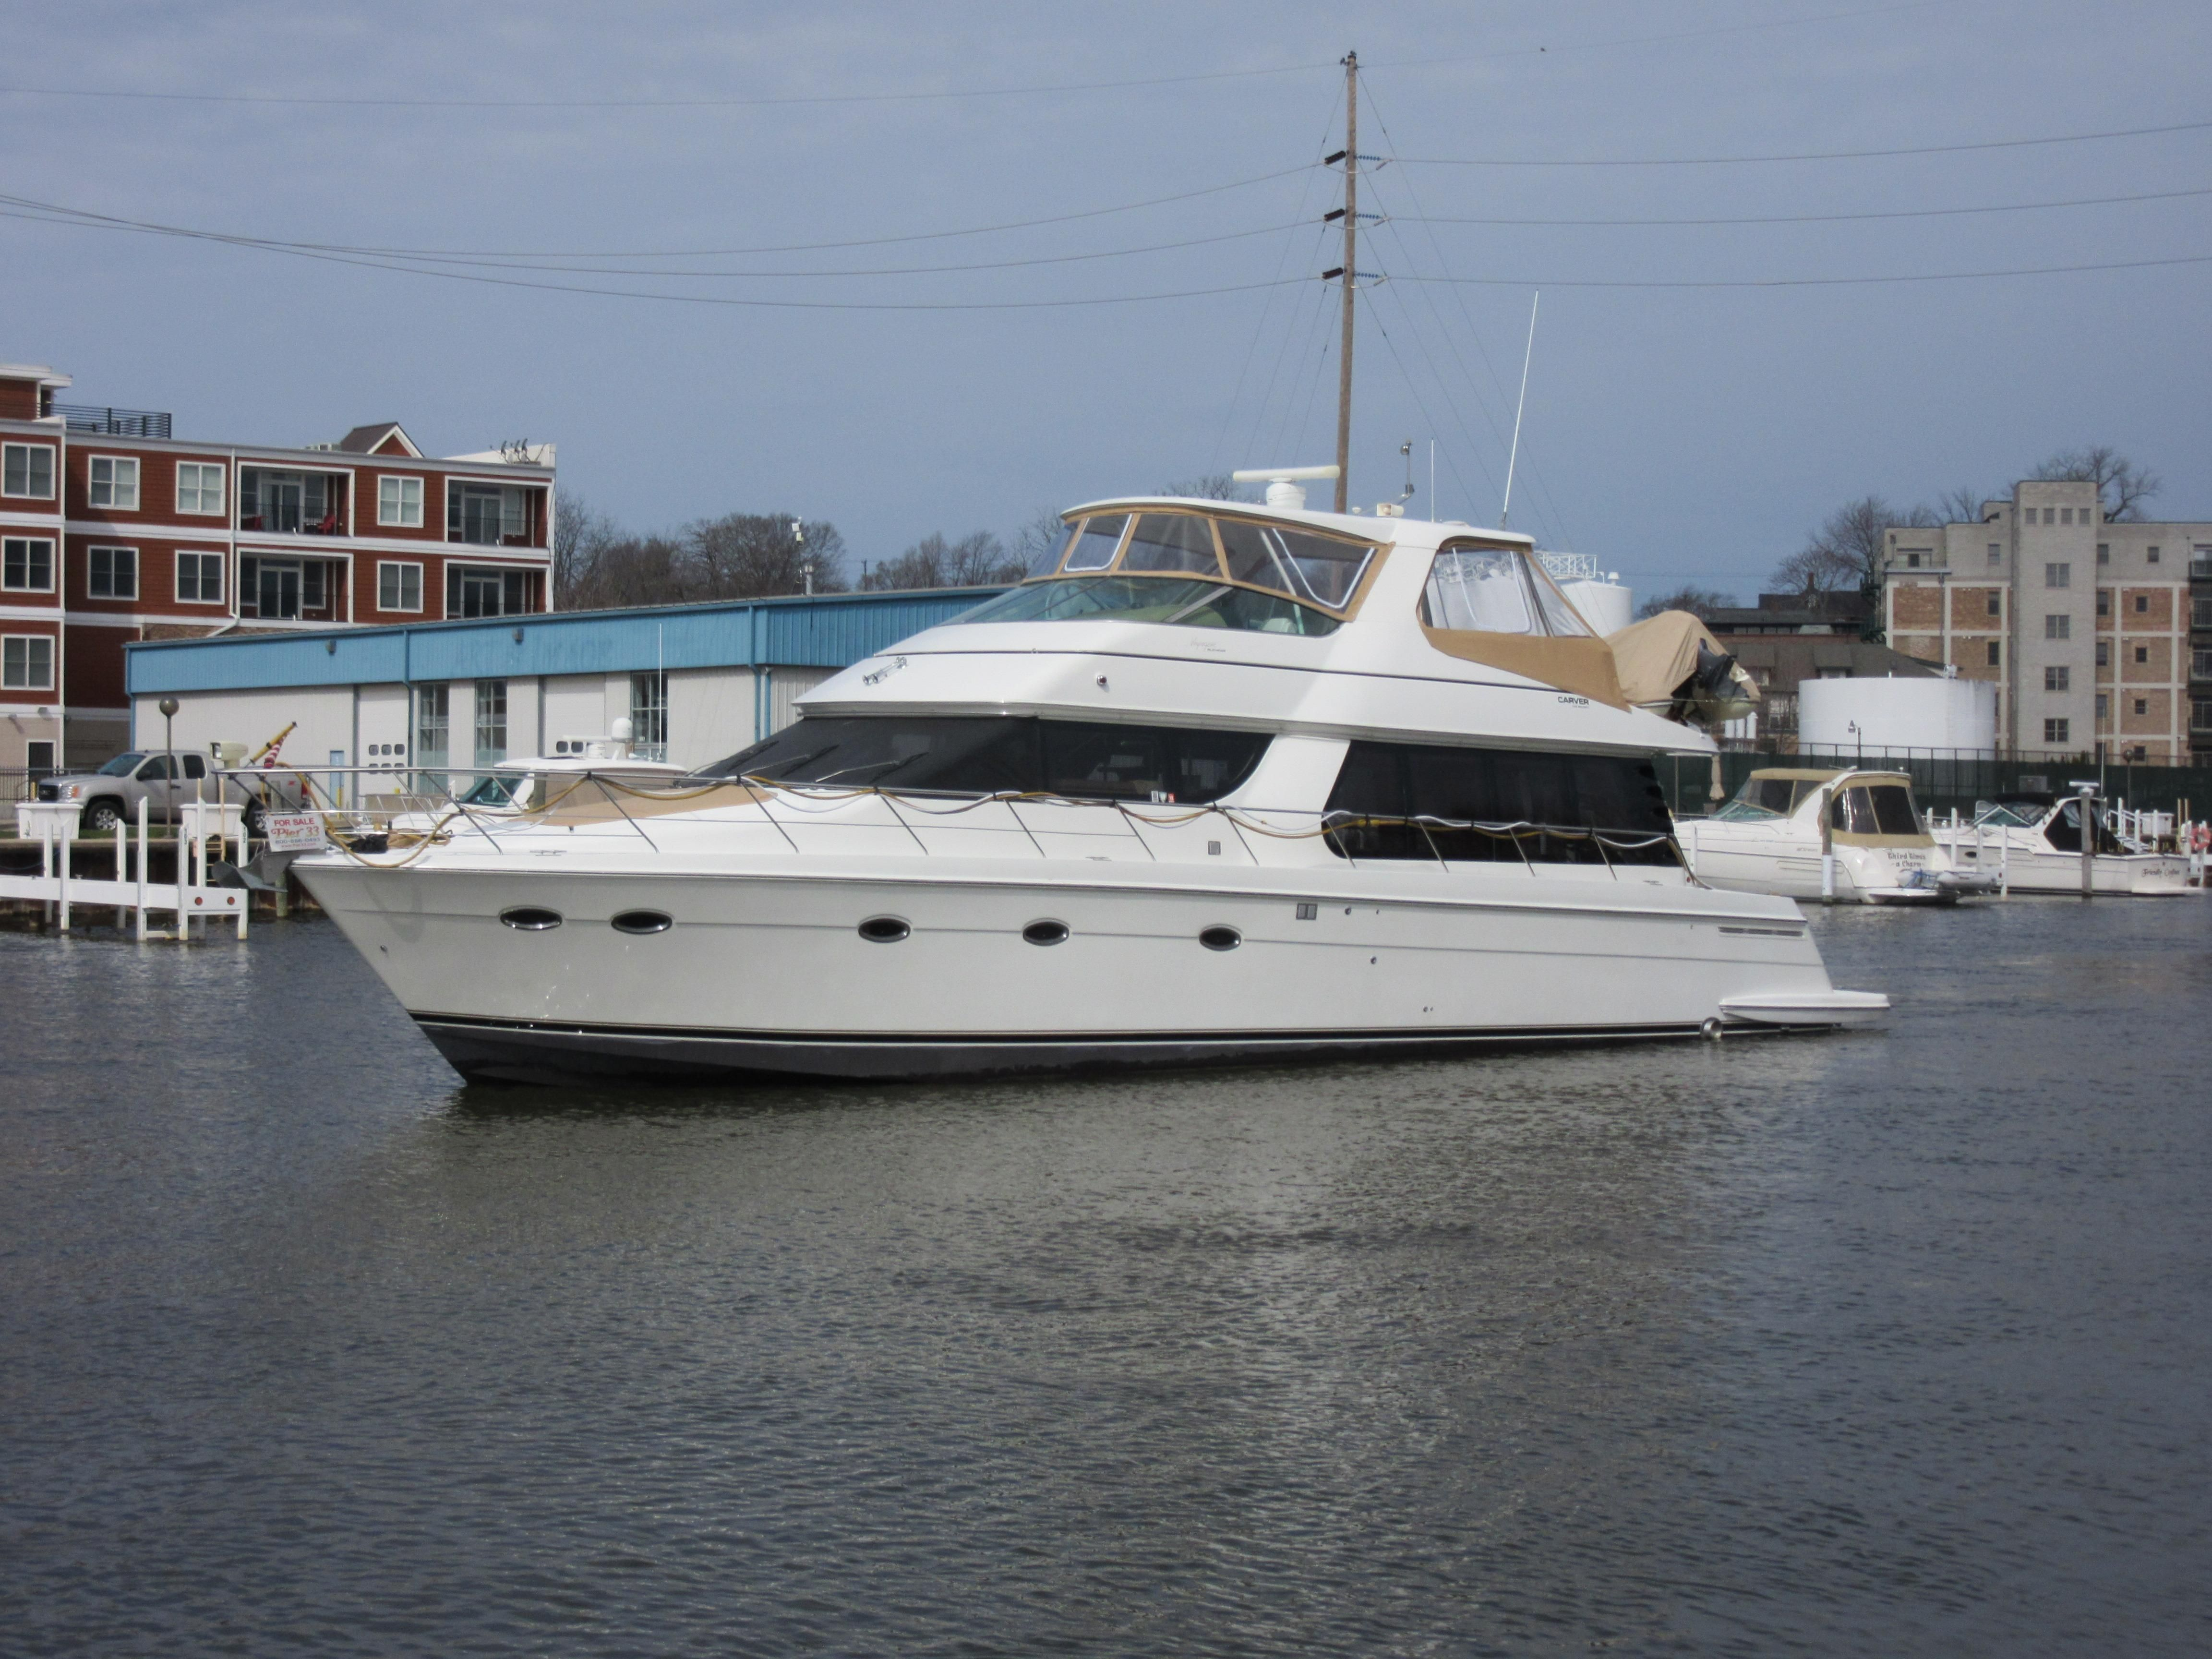 2003 Carver 570 Voyager Pilothouse Power Boat For Sale ...